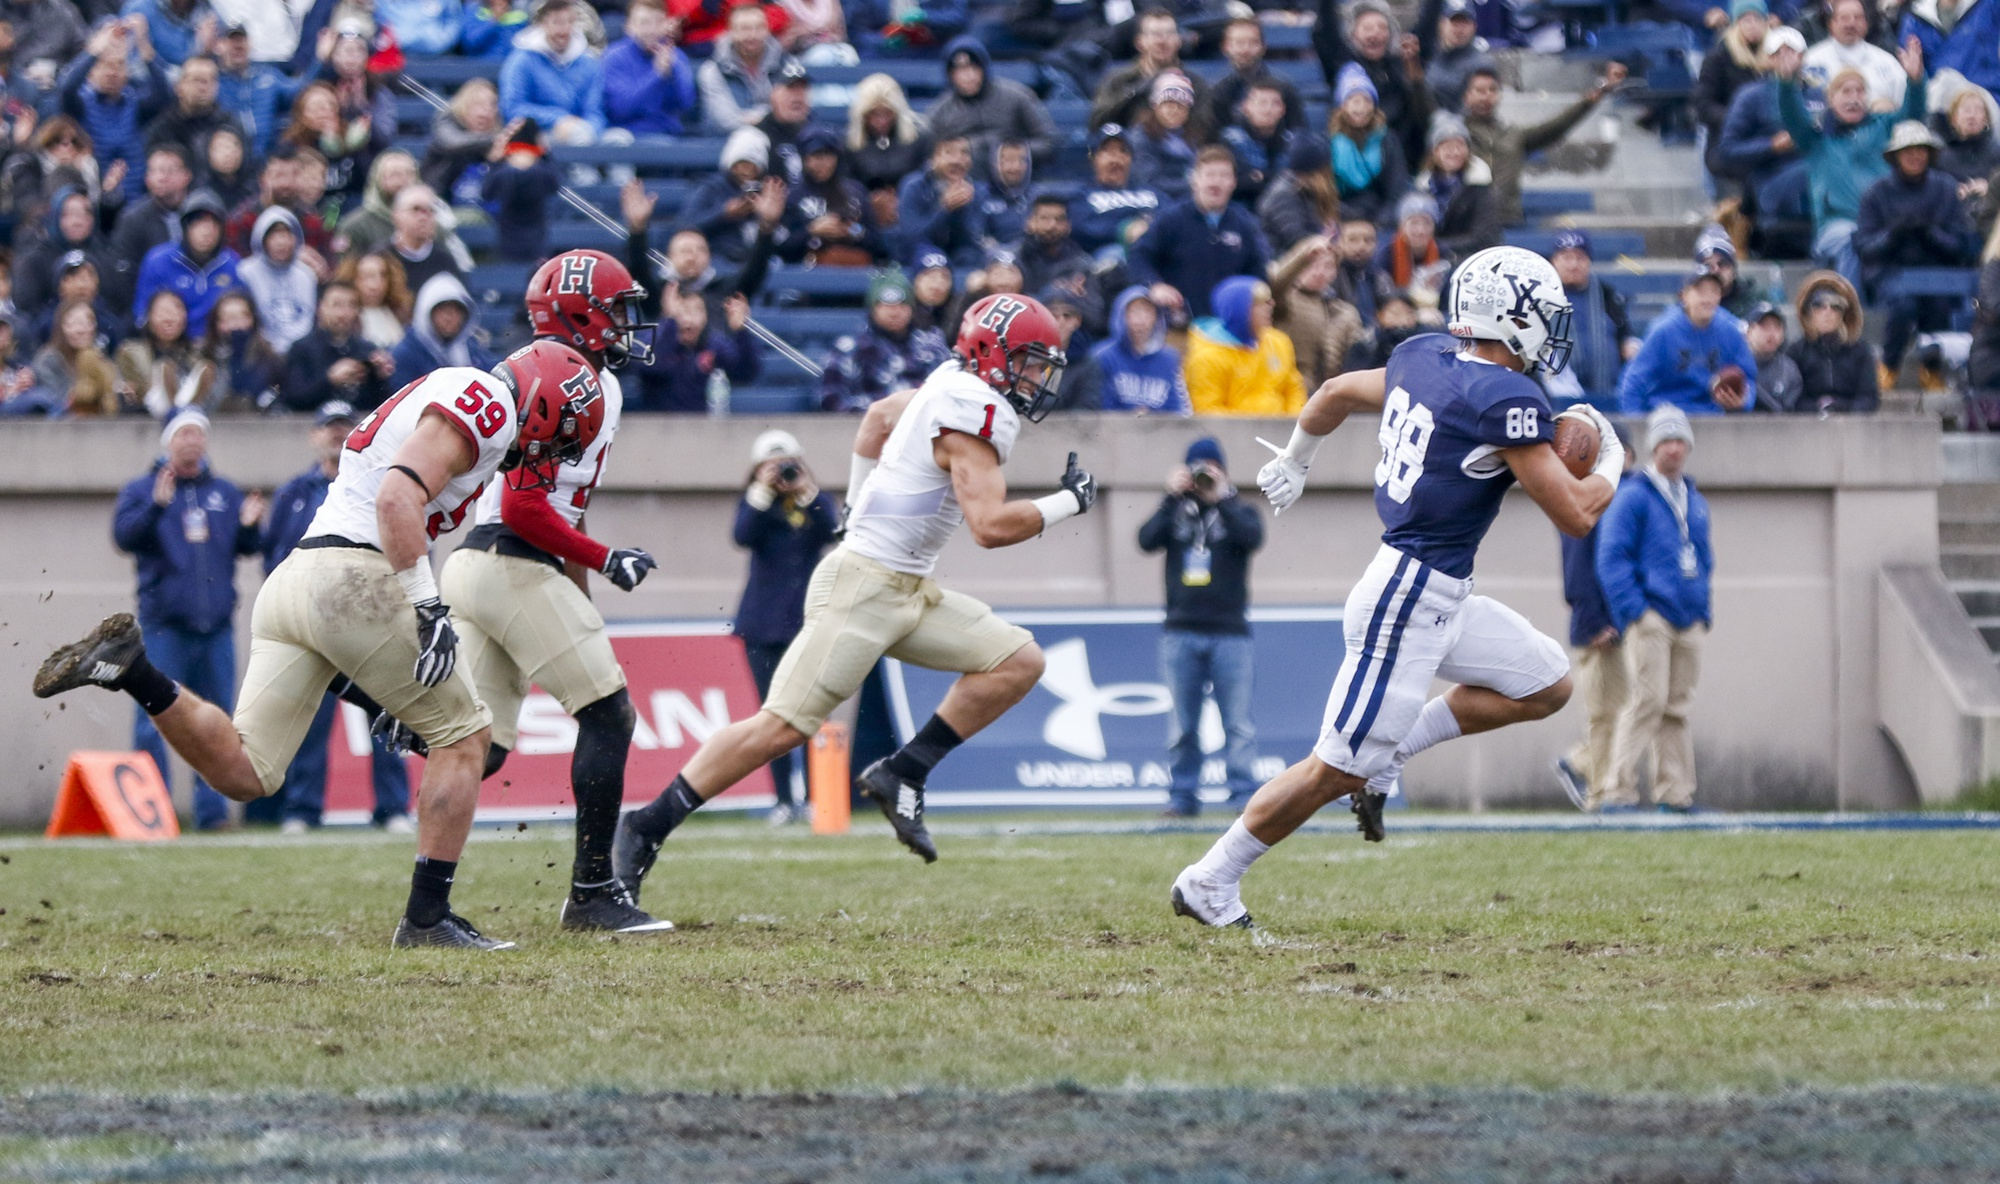 Last year, then-sophomore receiver JP Shohfi racked up 86 receiving yards and a touchdown in Yale's 24-3 win.